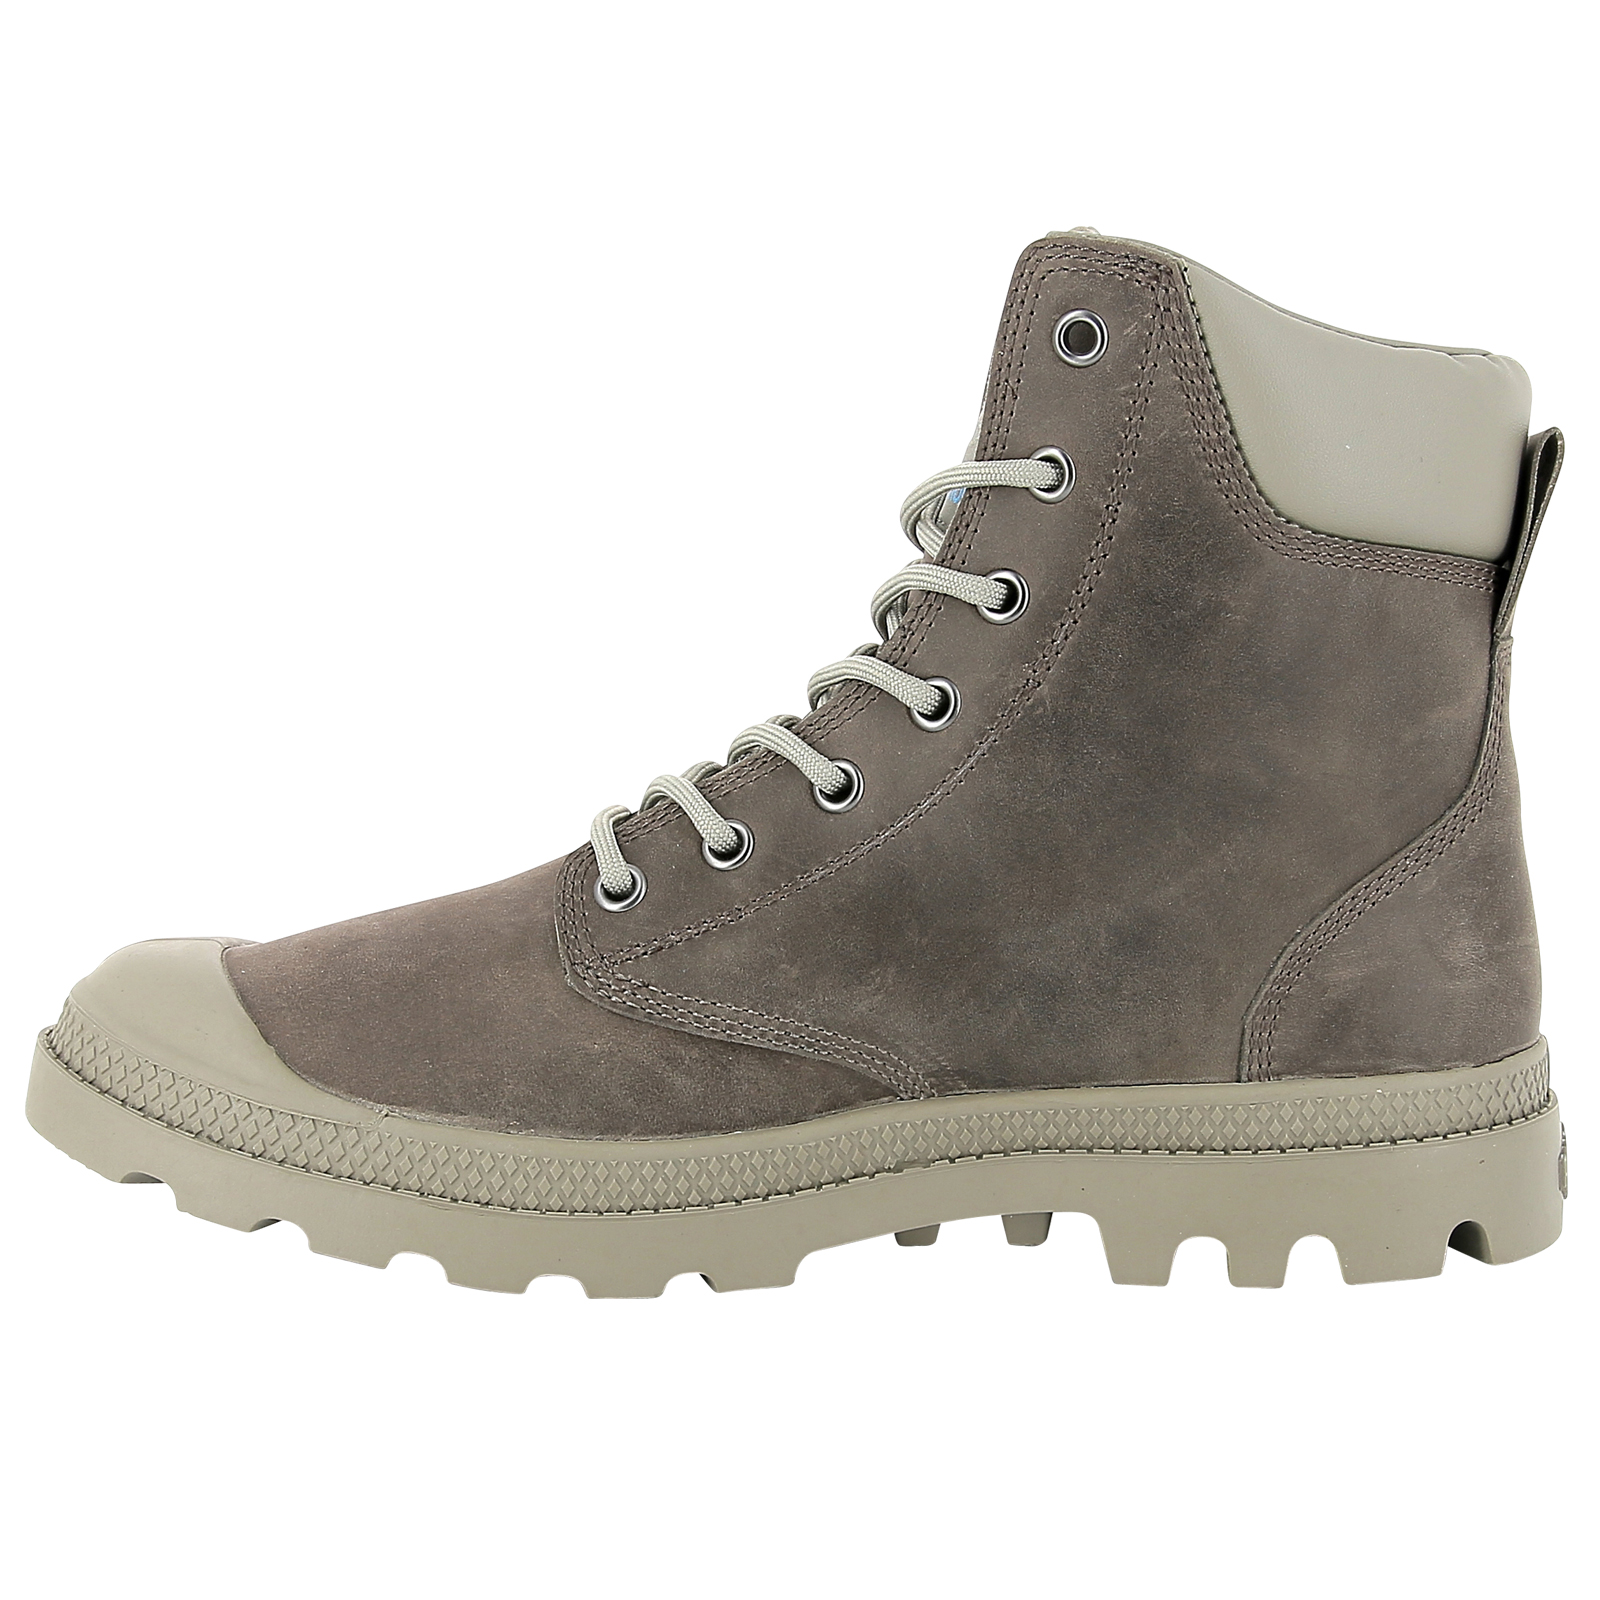 Palladium-Mens-Pampa-Cuff-Lux-Designer-Waterproof-Leather-Walking-Boots-Shoes thumbnail 19